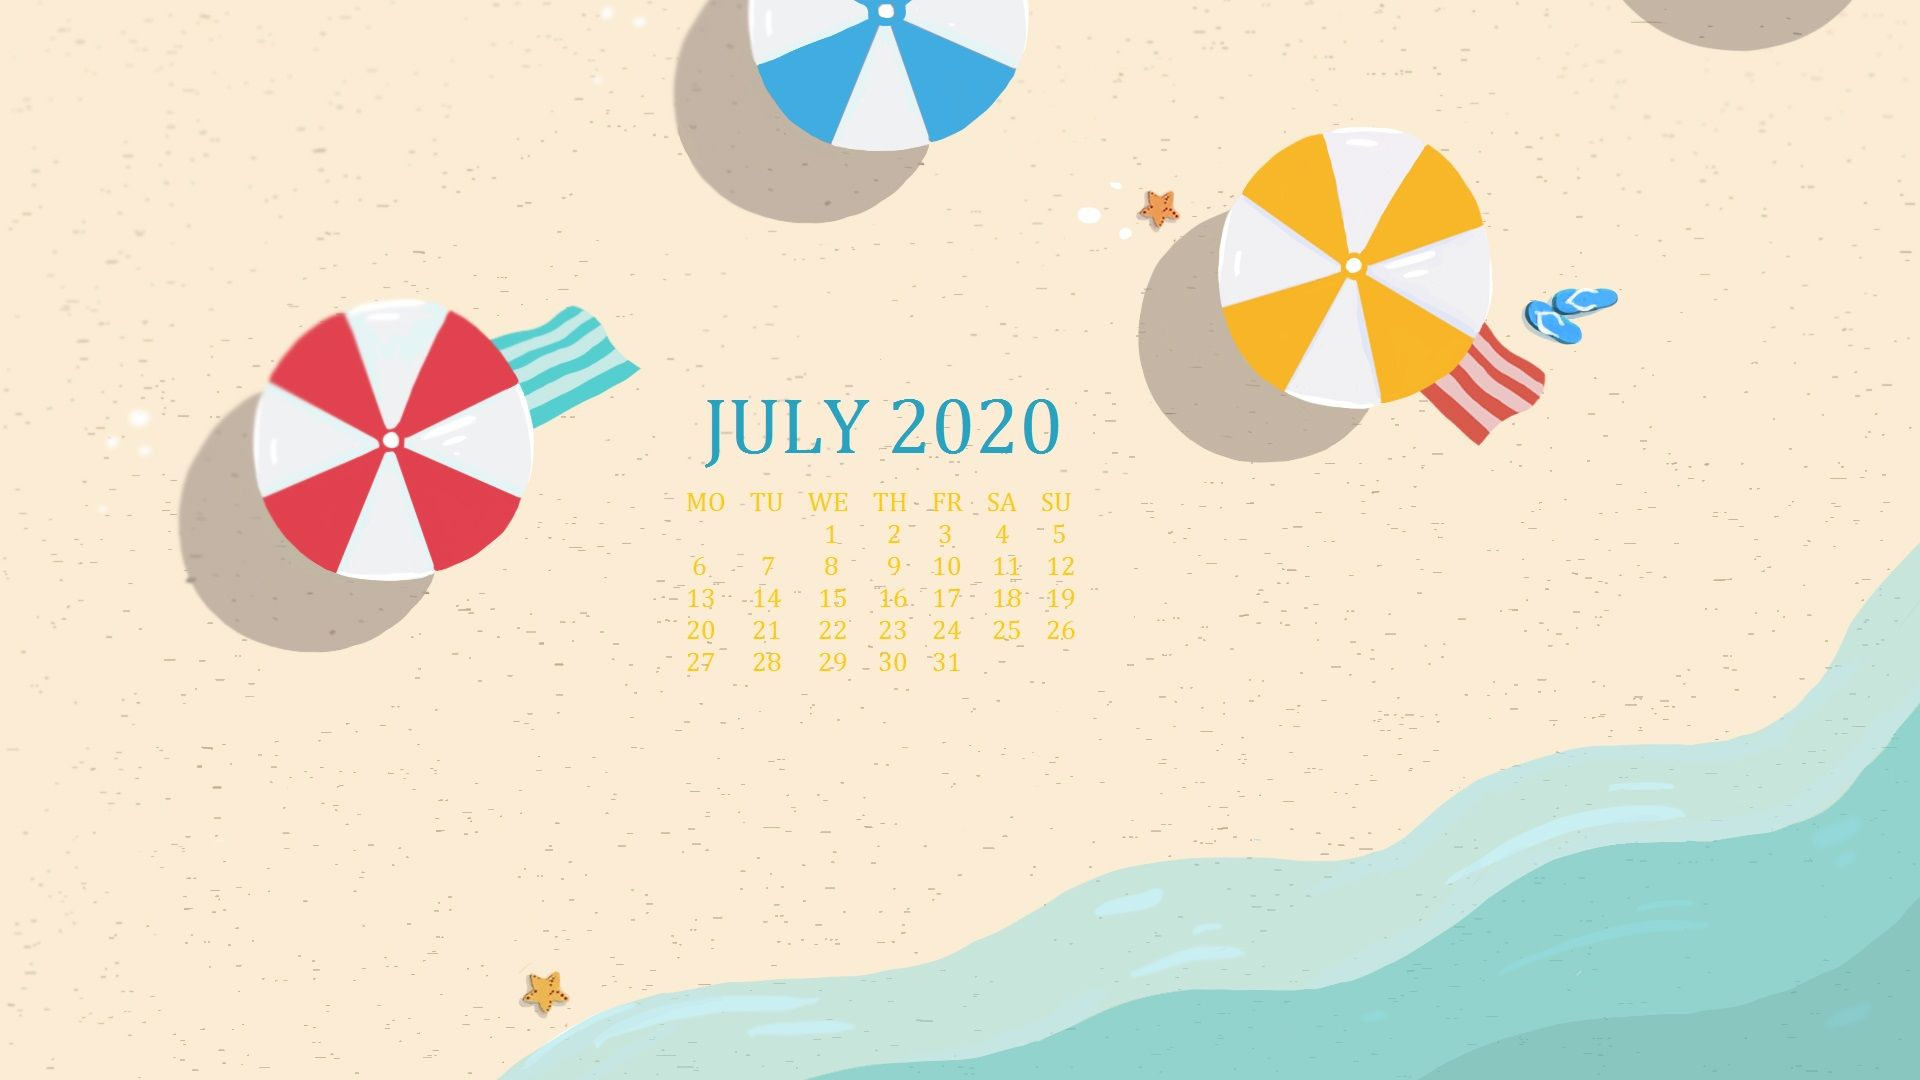 July 2020 Calendar Wallpapers Wallpaper Cave